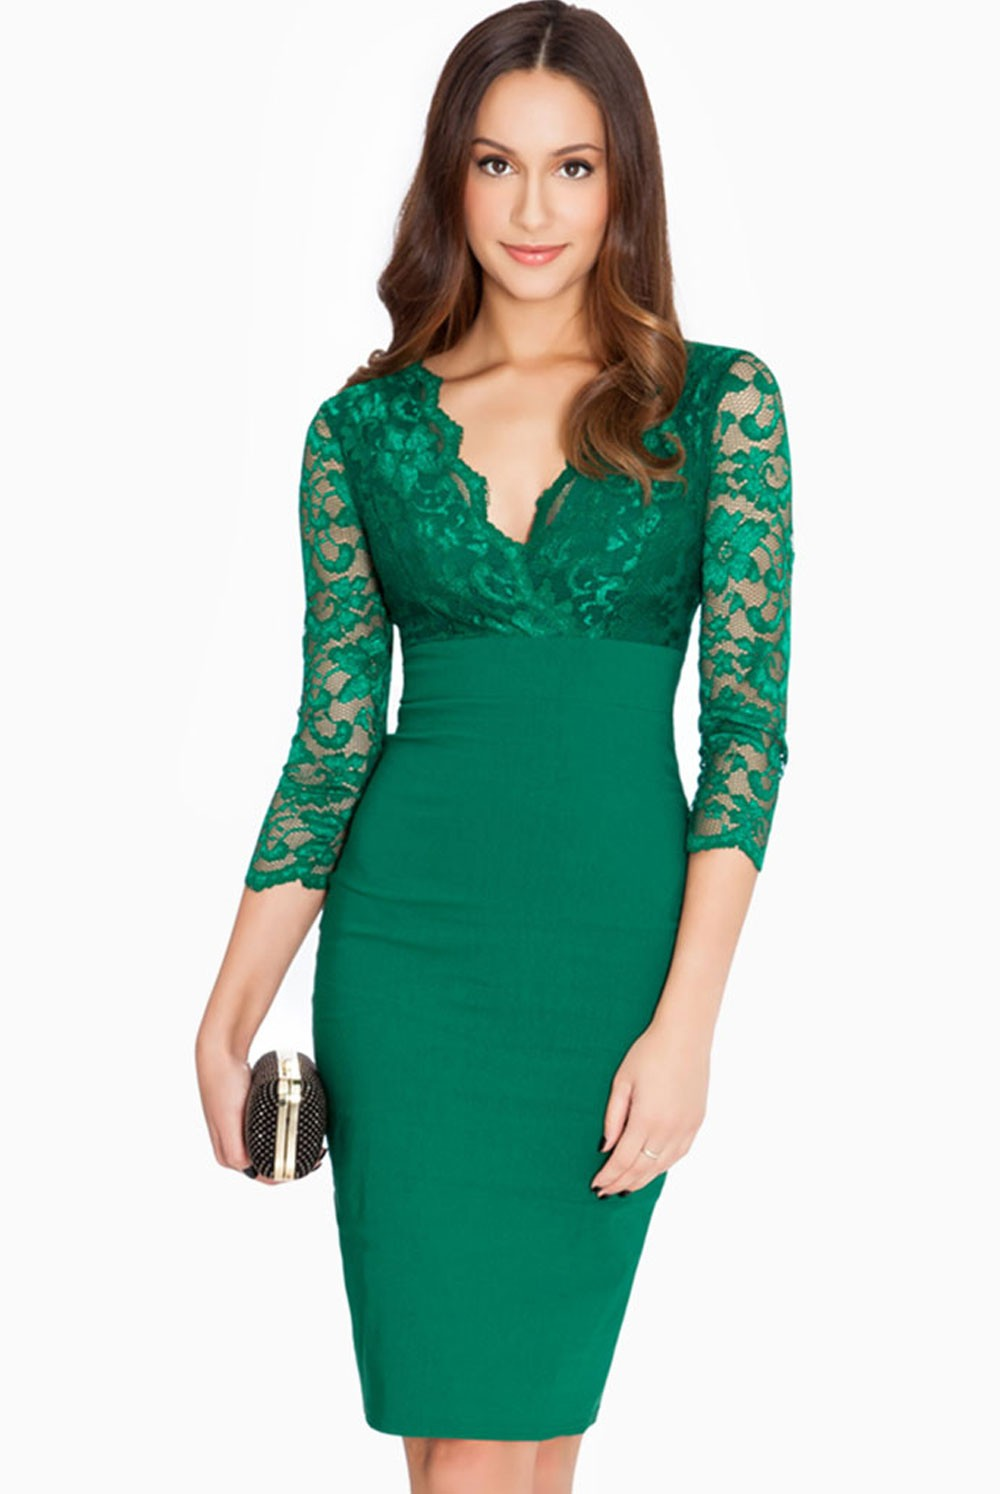 Opt for elegance in this juniors' maxi lace occasion dress from Emerald Sundae. The lengthy design makes a gorgeous formal statement with a slim, sleek cut. The lengthy design makes a gorgeous formal statement with a slim, sleek cut.